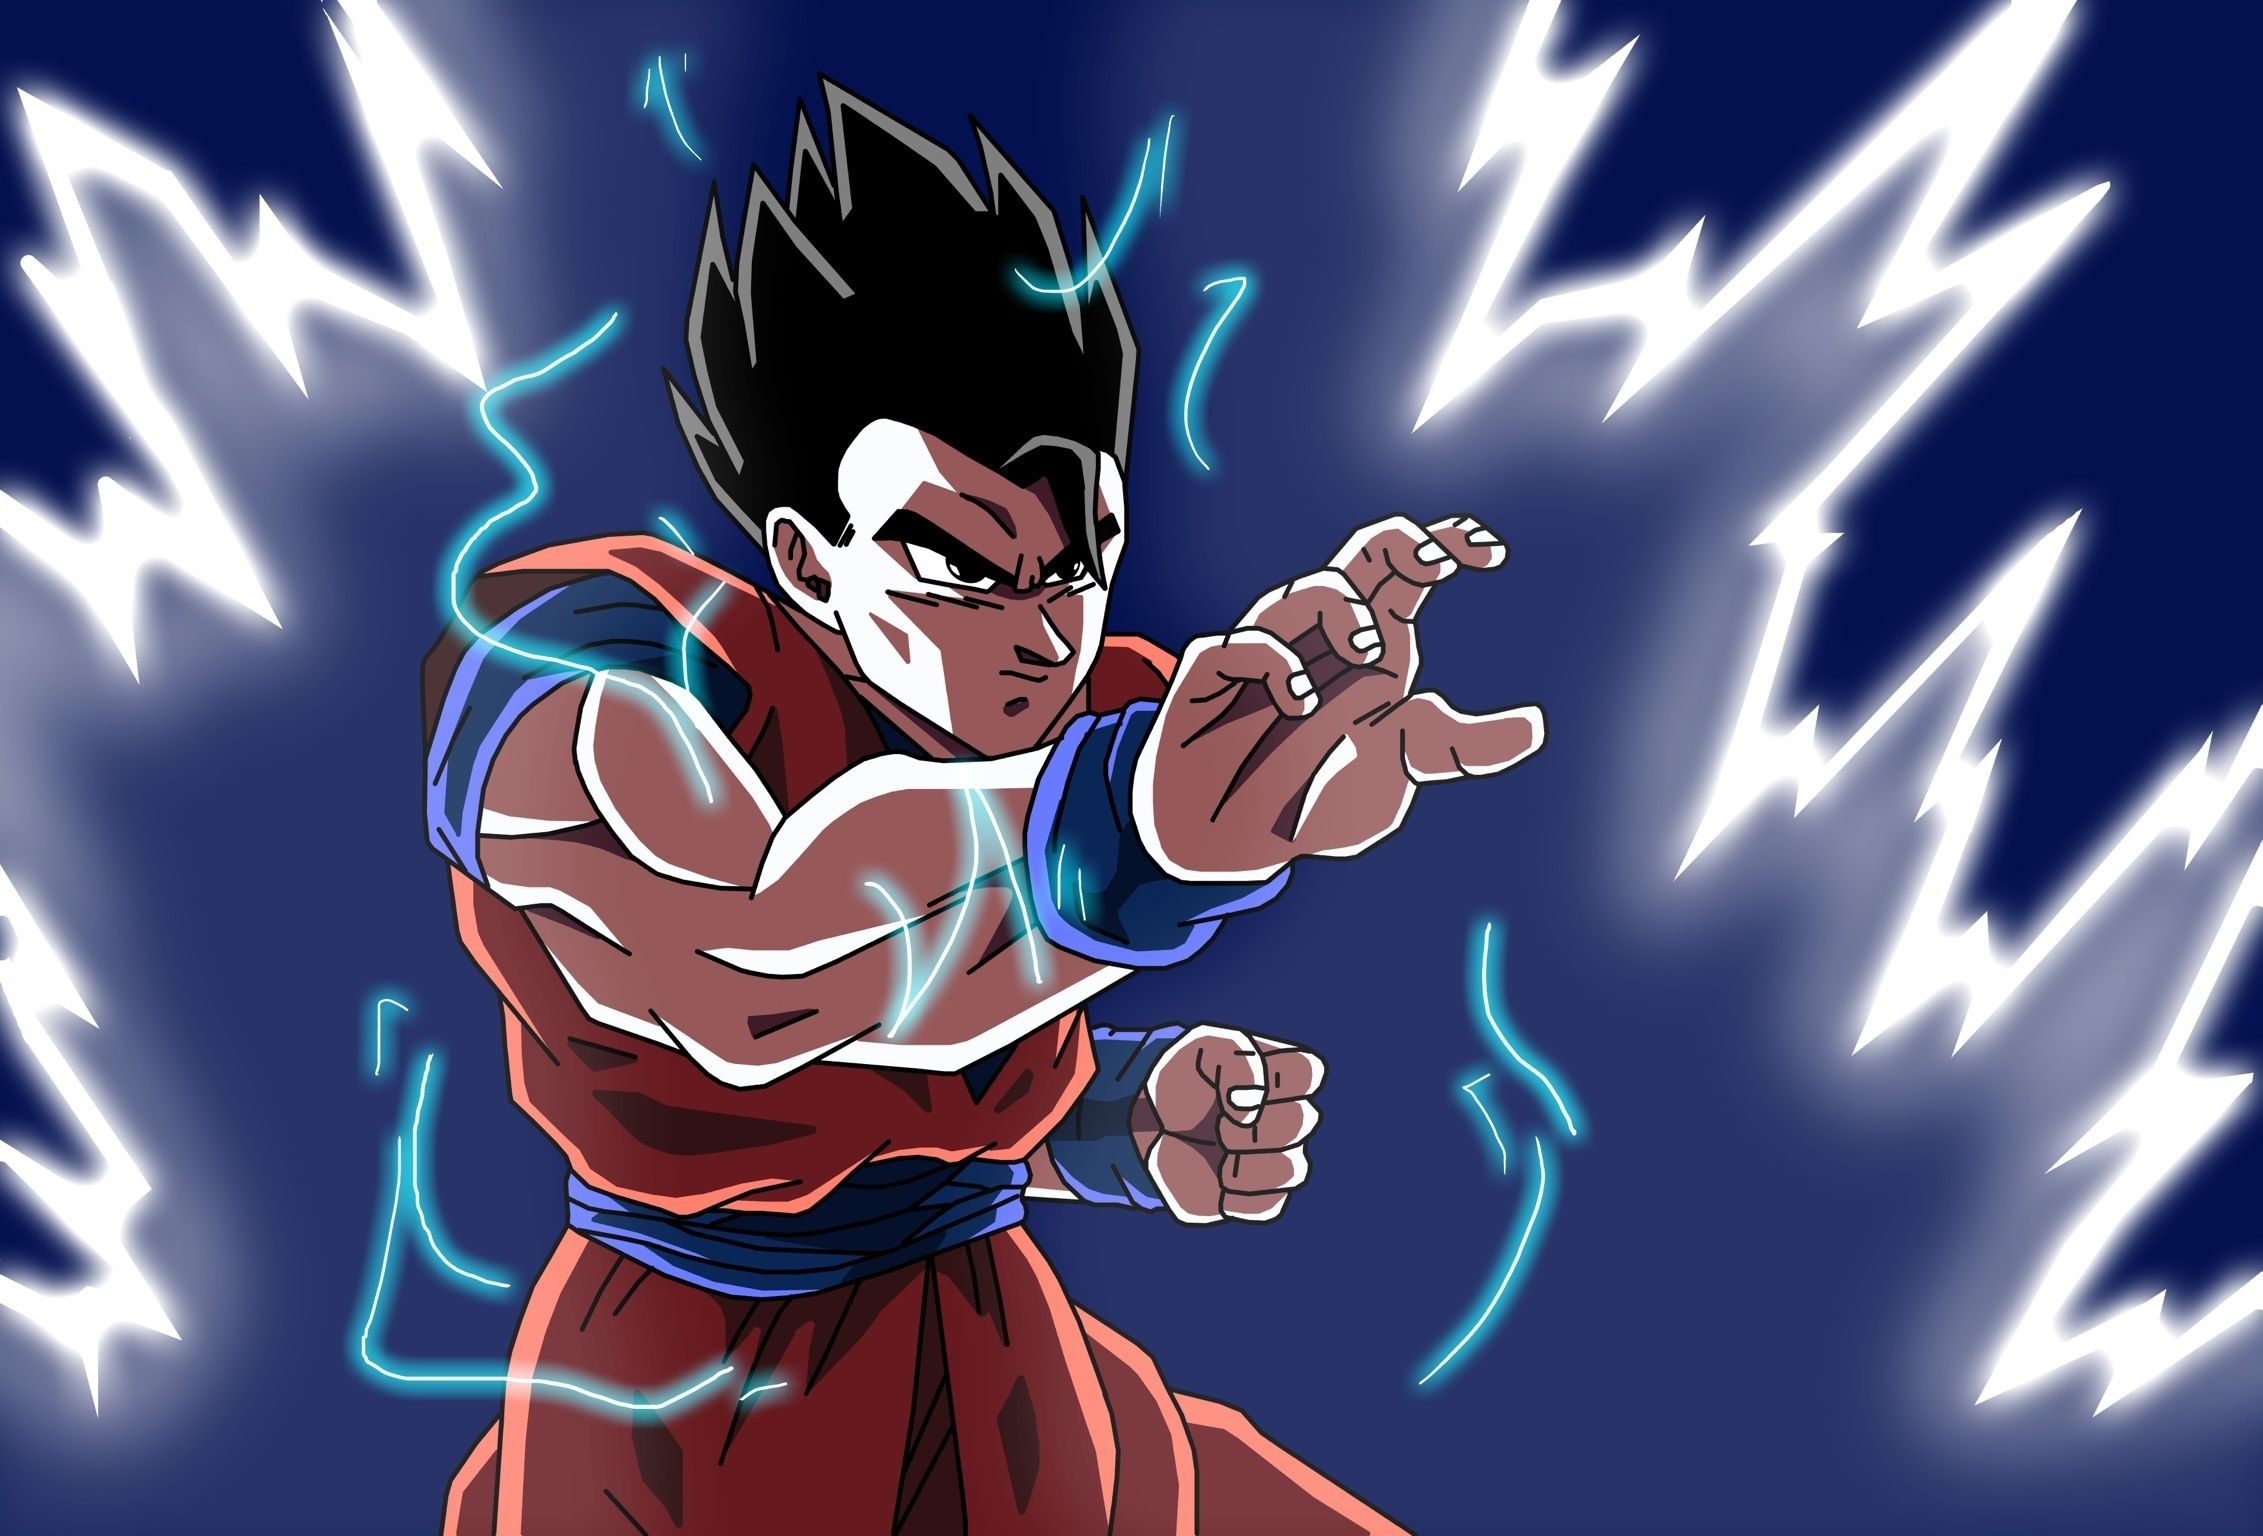 Res: 2263x1536, Ultimate Gohan Wallpapers - Wallpaper Cave